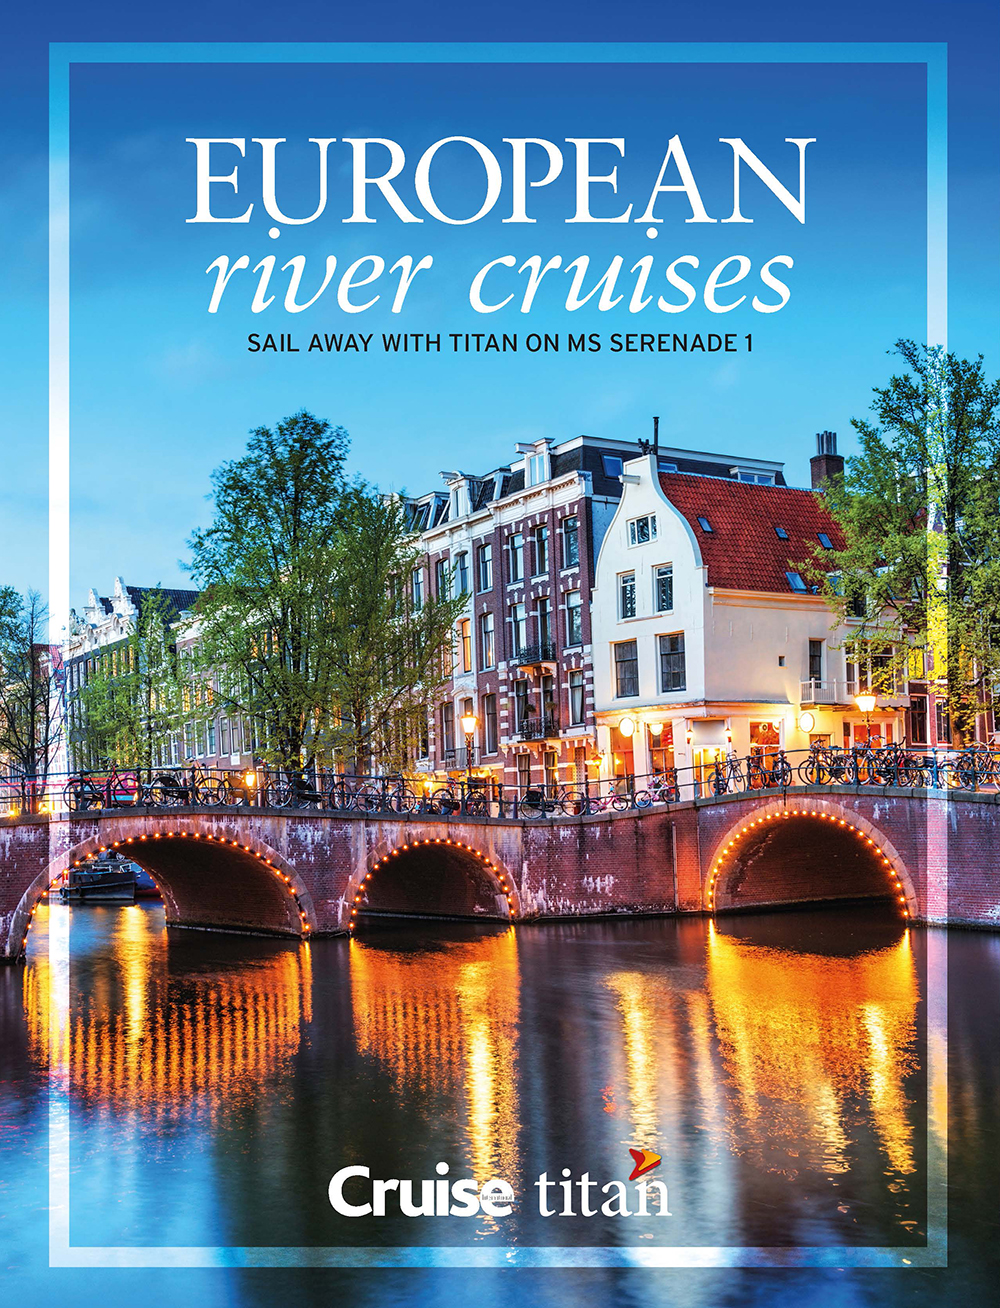 European River Cruises, 50 Of The Best No-fly Cruises